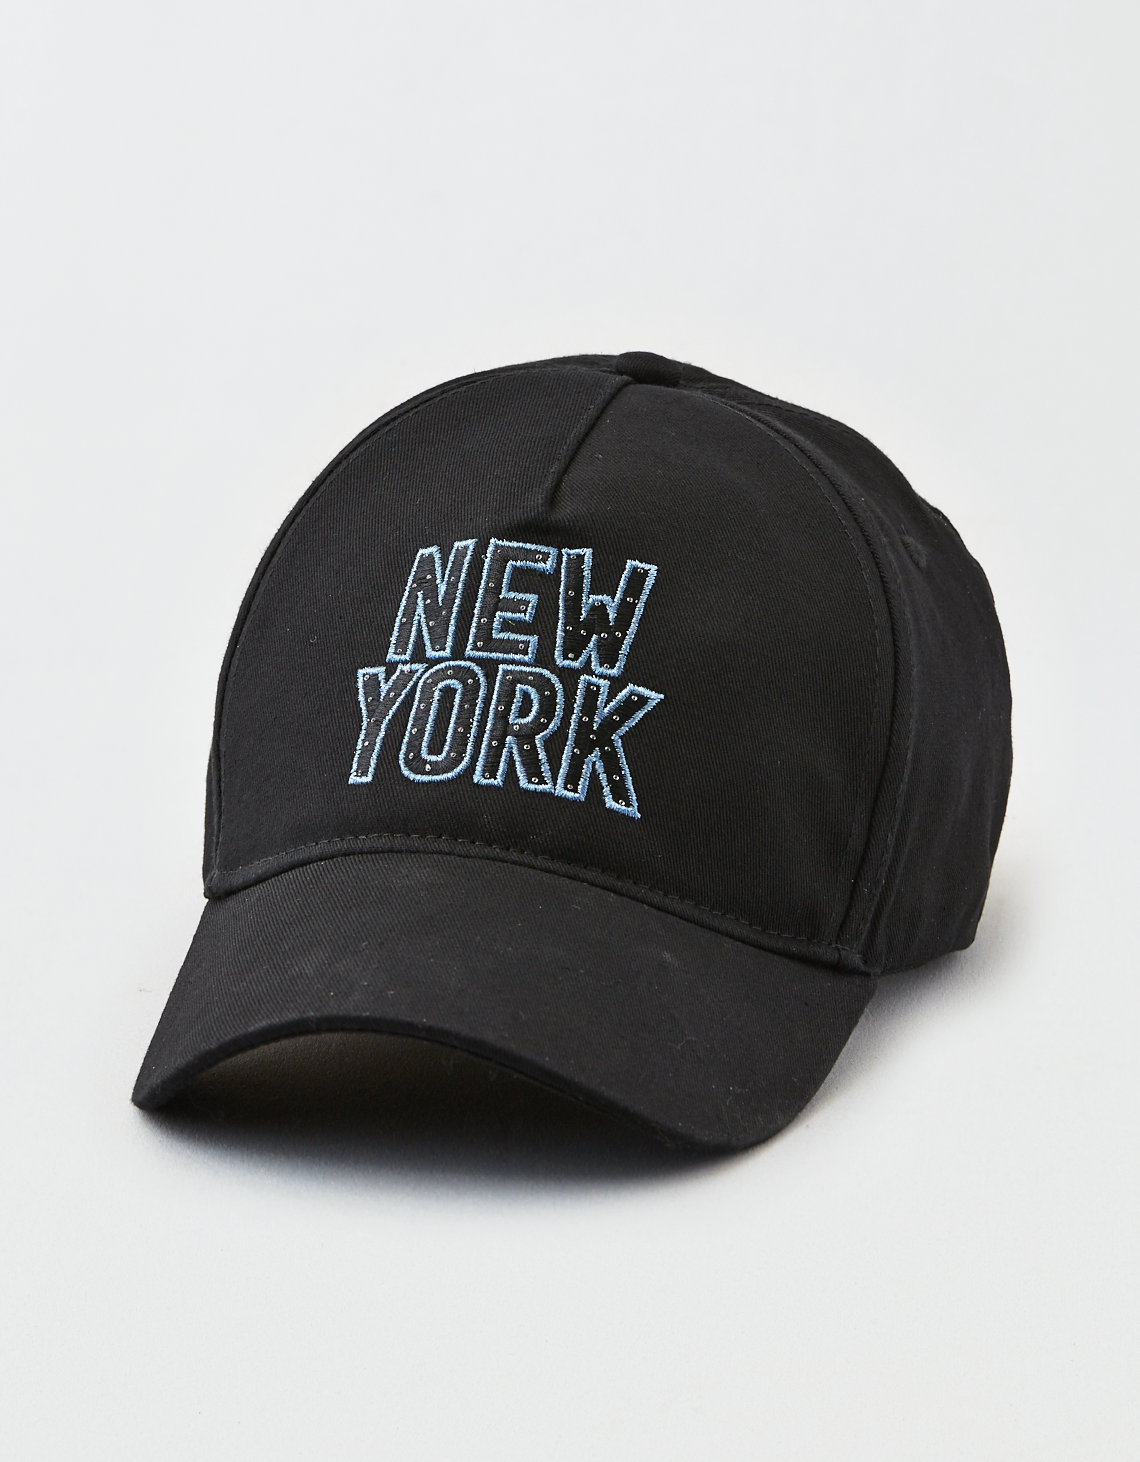 80f0f40abfd AEO City Light-Up Trucker Hat